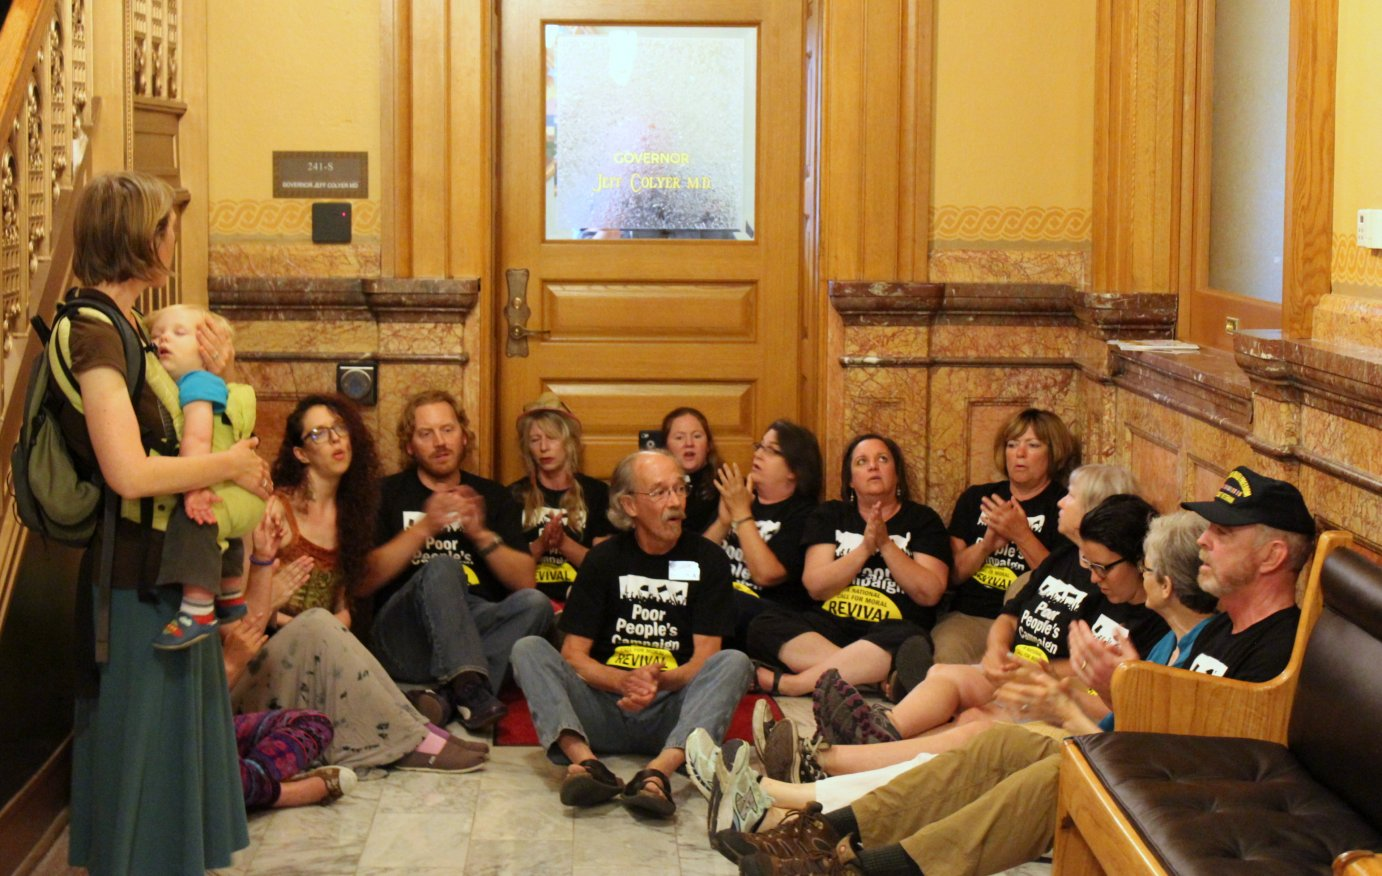 Protesters in the Kansas Capitol this week. (Photo by Stephen Koranda)